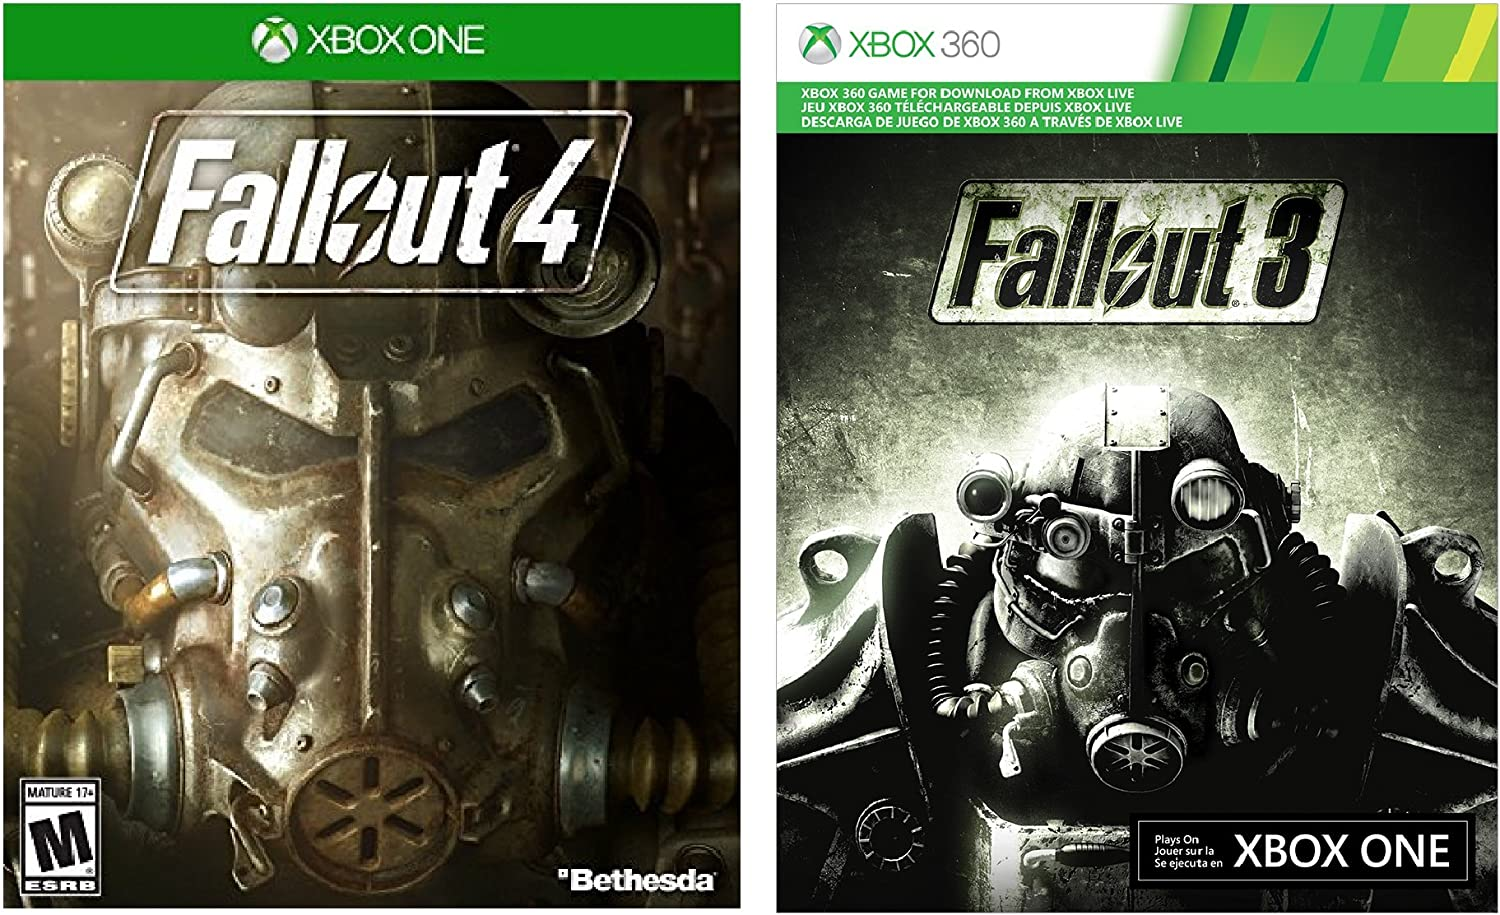 Fallout 4 direct download